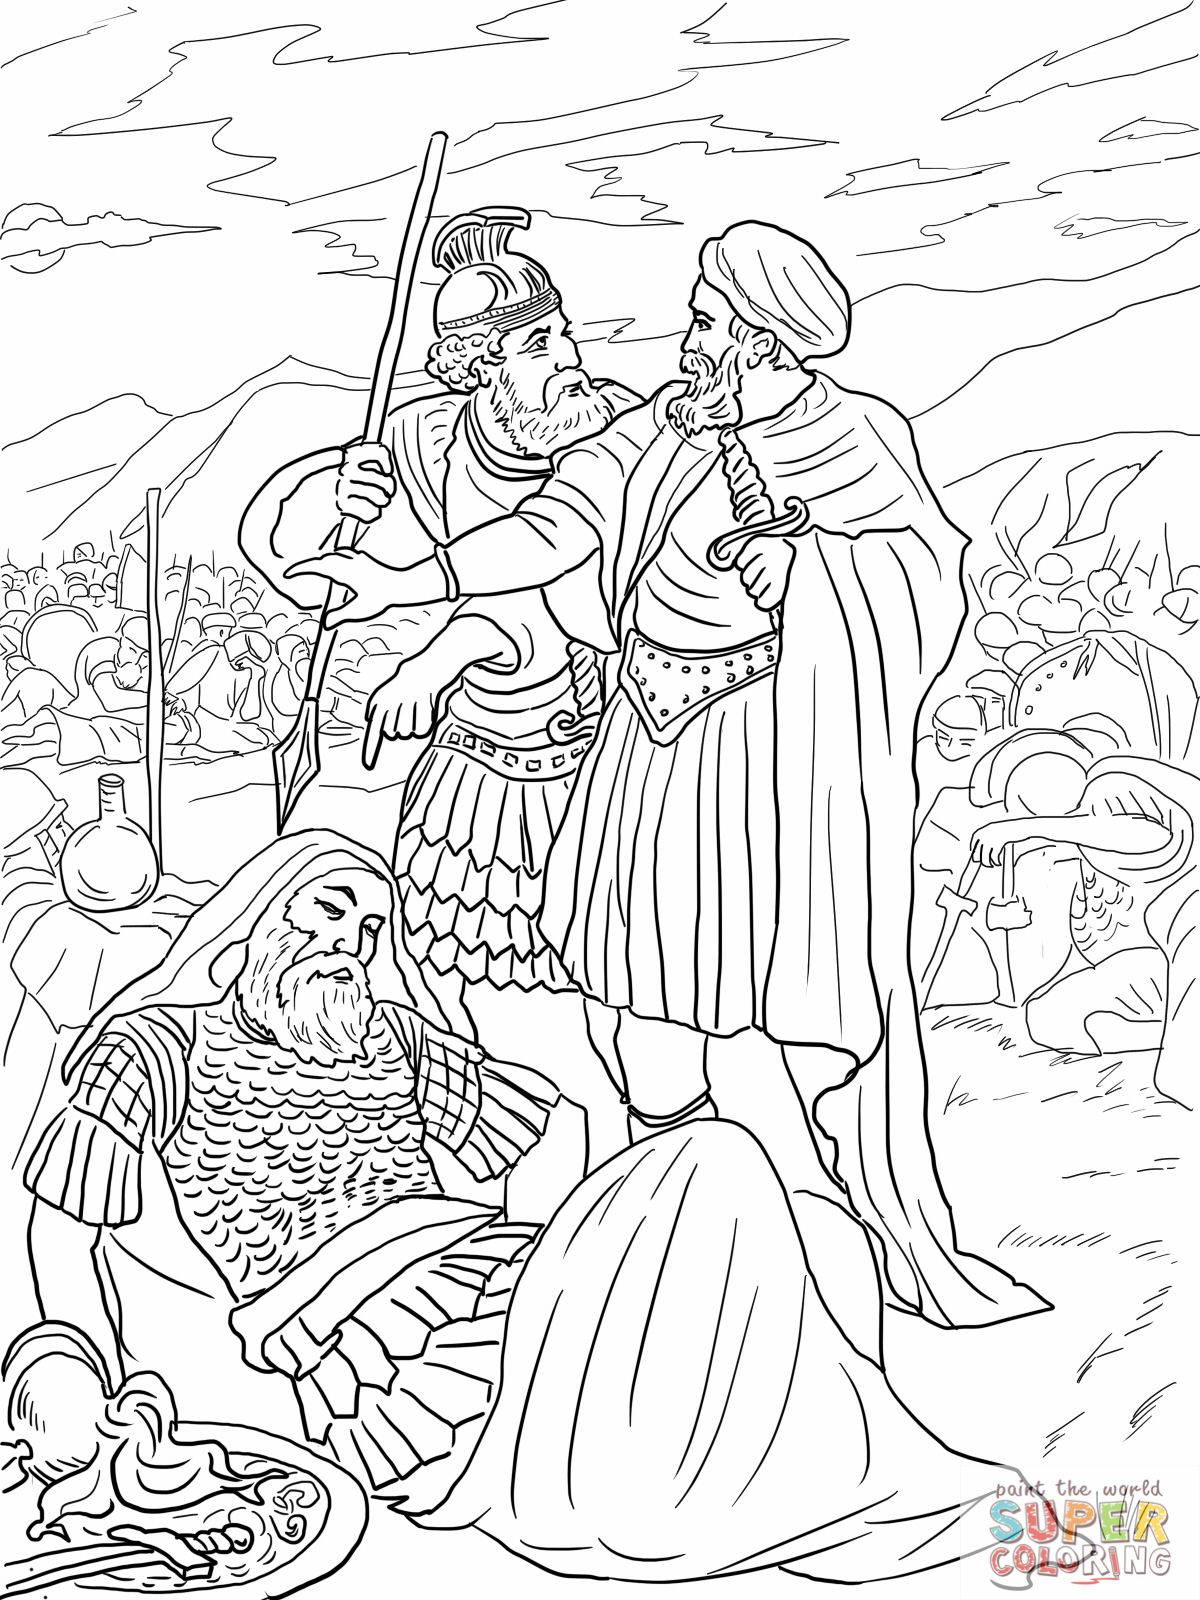 Free coloring pages king josiah - 4 David Spares King Saul Coloring Page Jpg